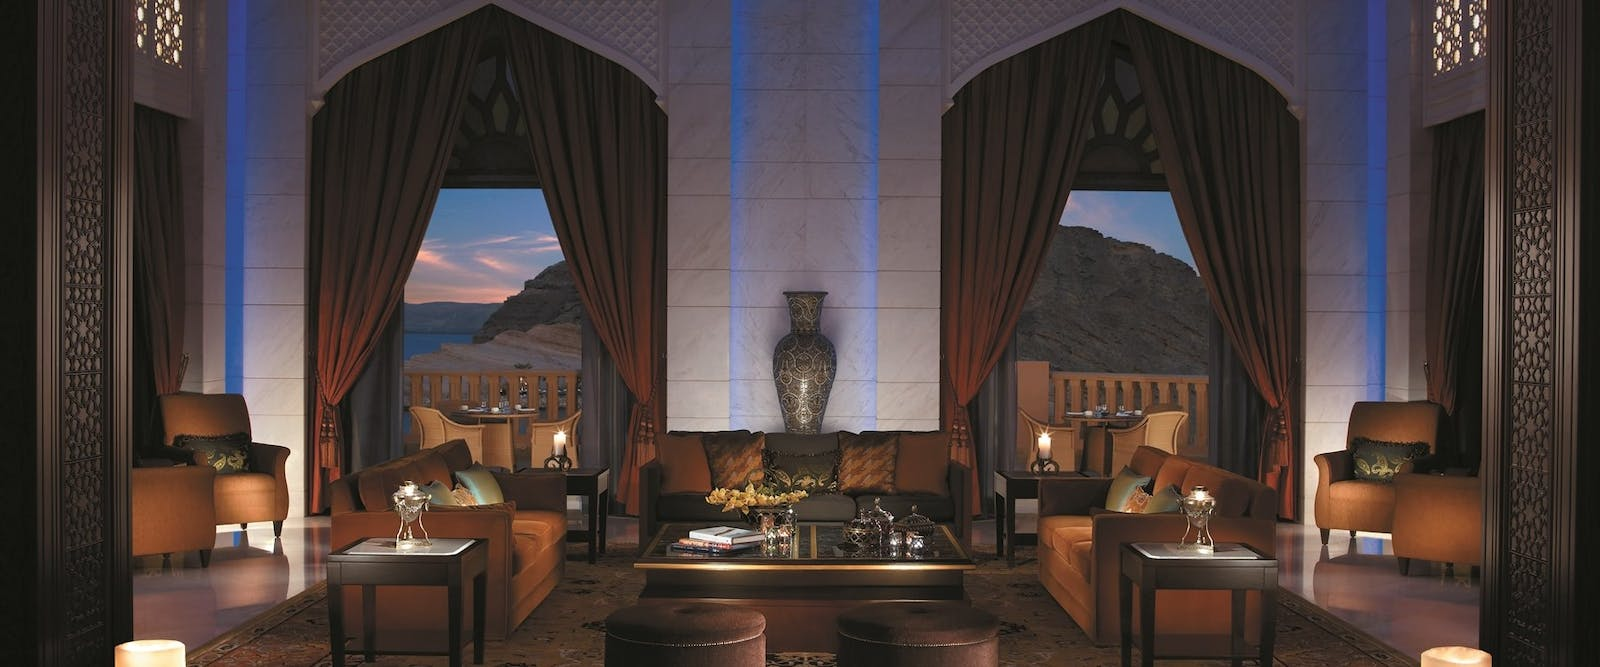 Lobby lounge at Shangri-La's Al Husn Resort & Spa